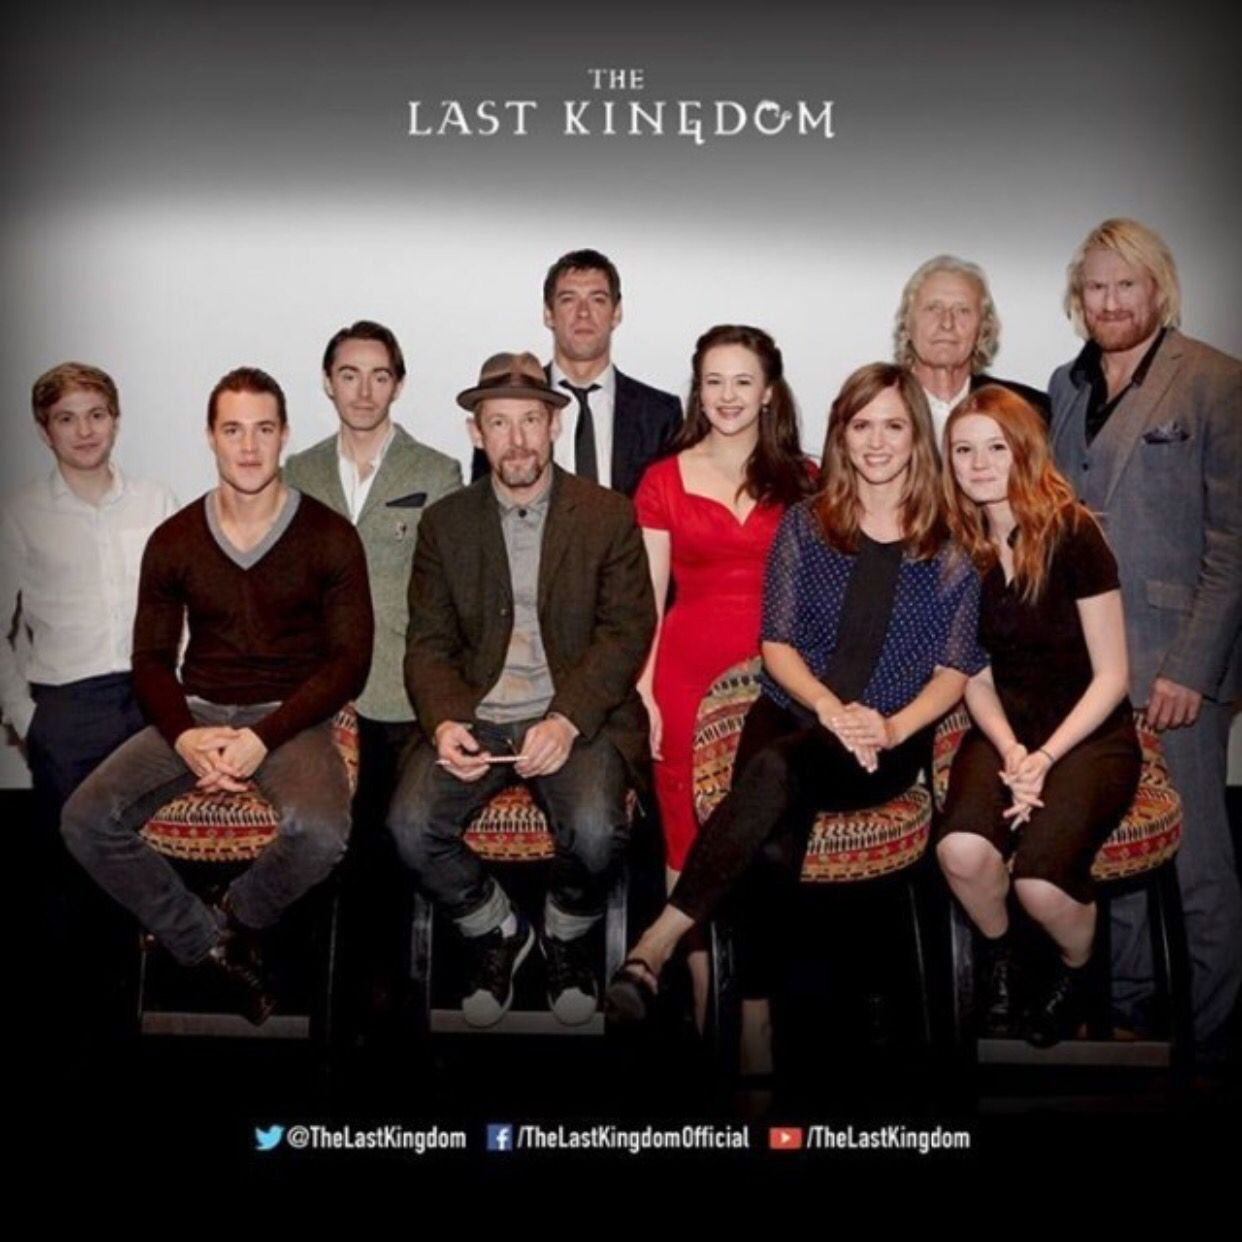 The Last Kingdom Season 5 Cast